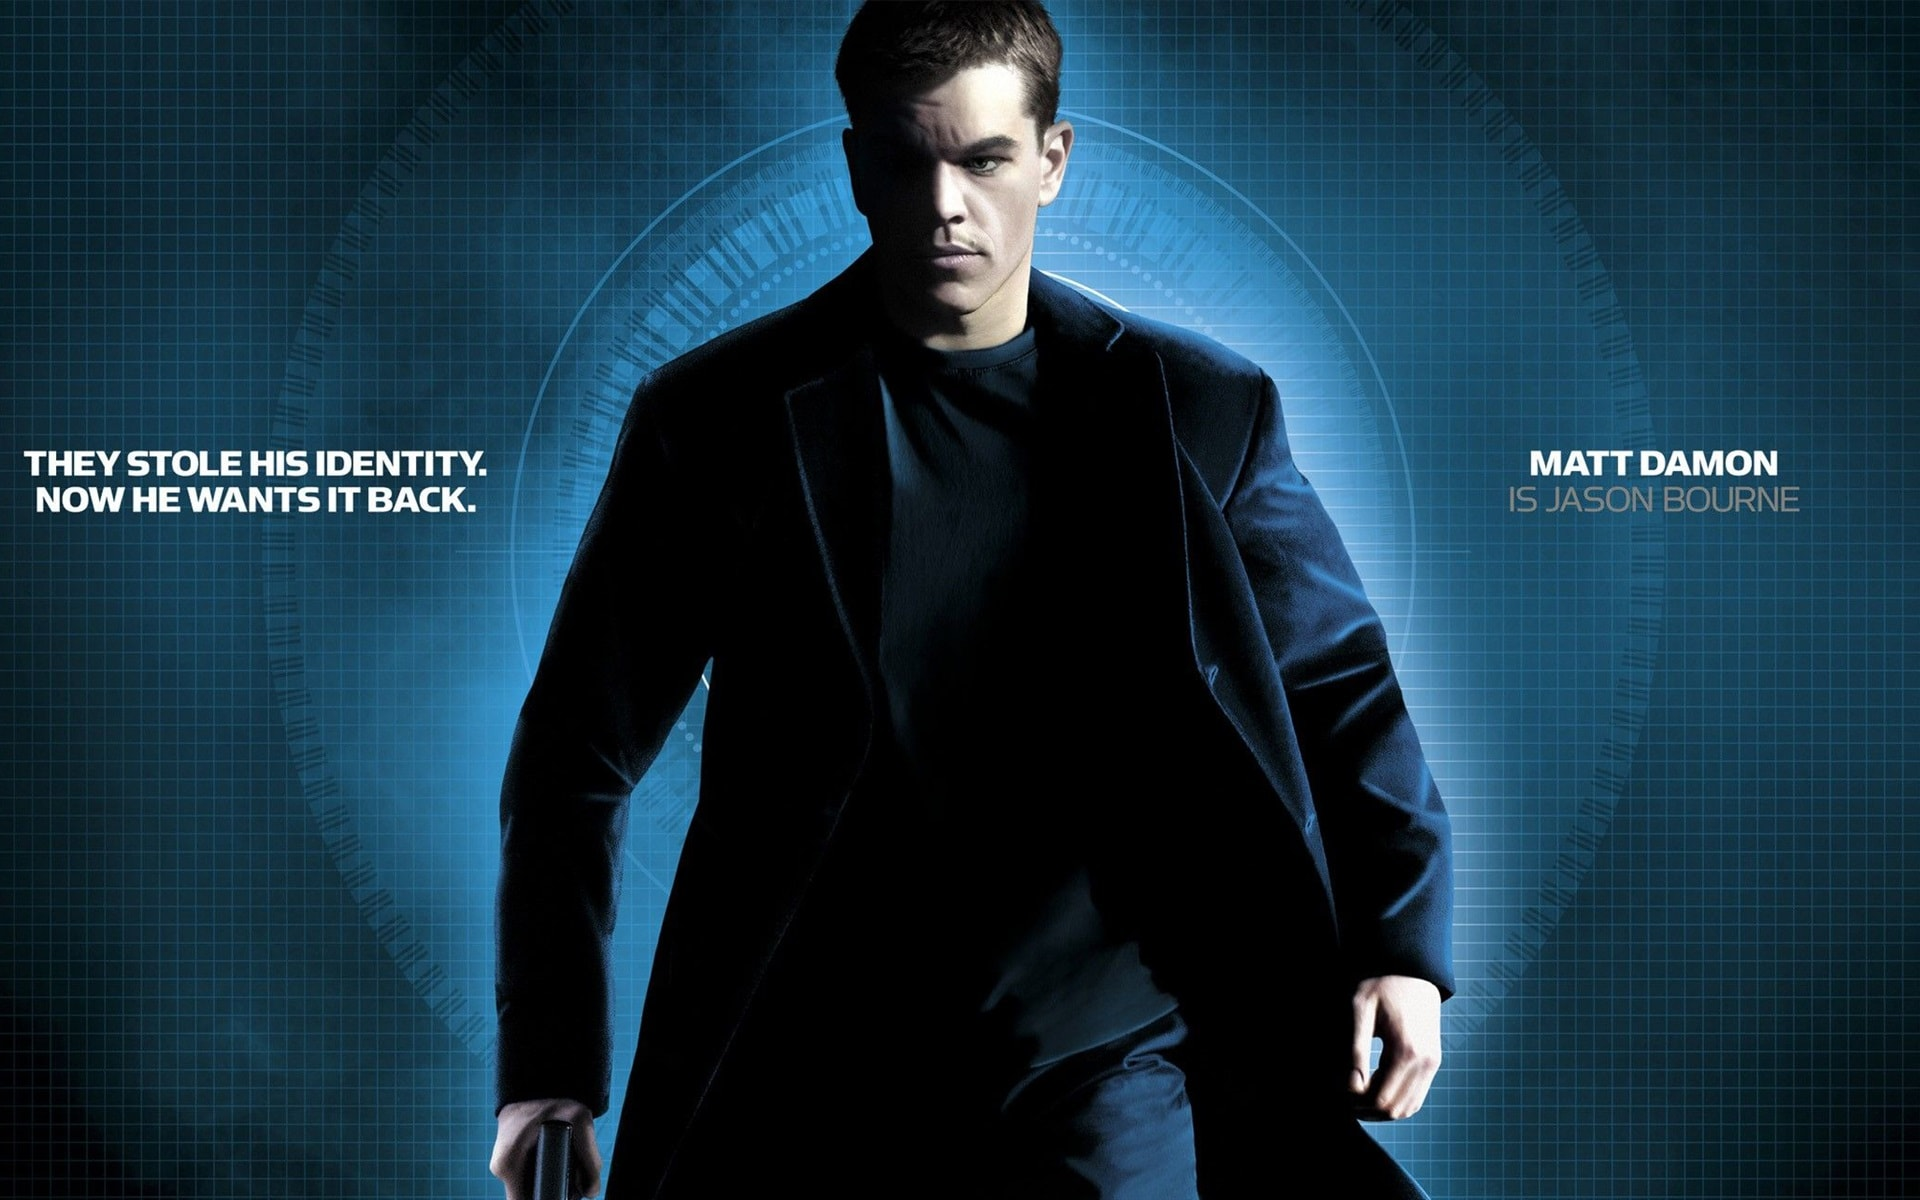 Jason Bourne Wallpapers hd